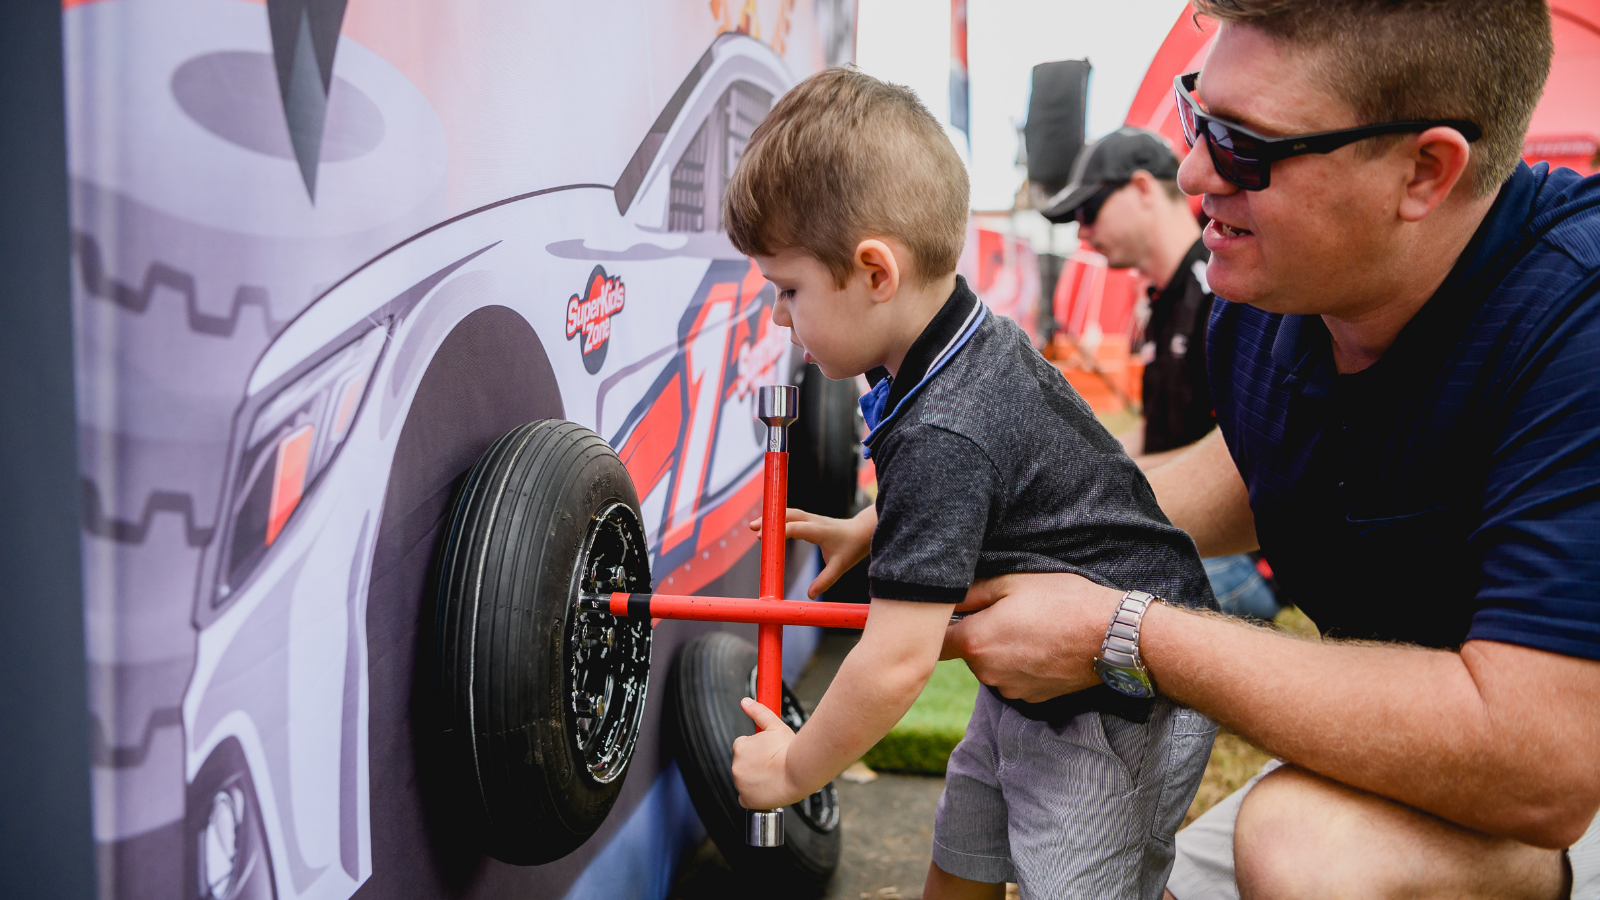 WIN // 1 of 3 Family 3-Day Passes to the Vodafone Gold Coast 600